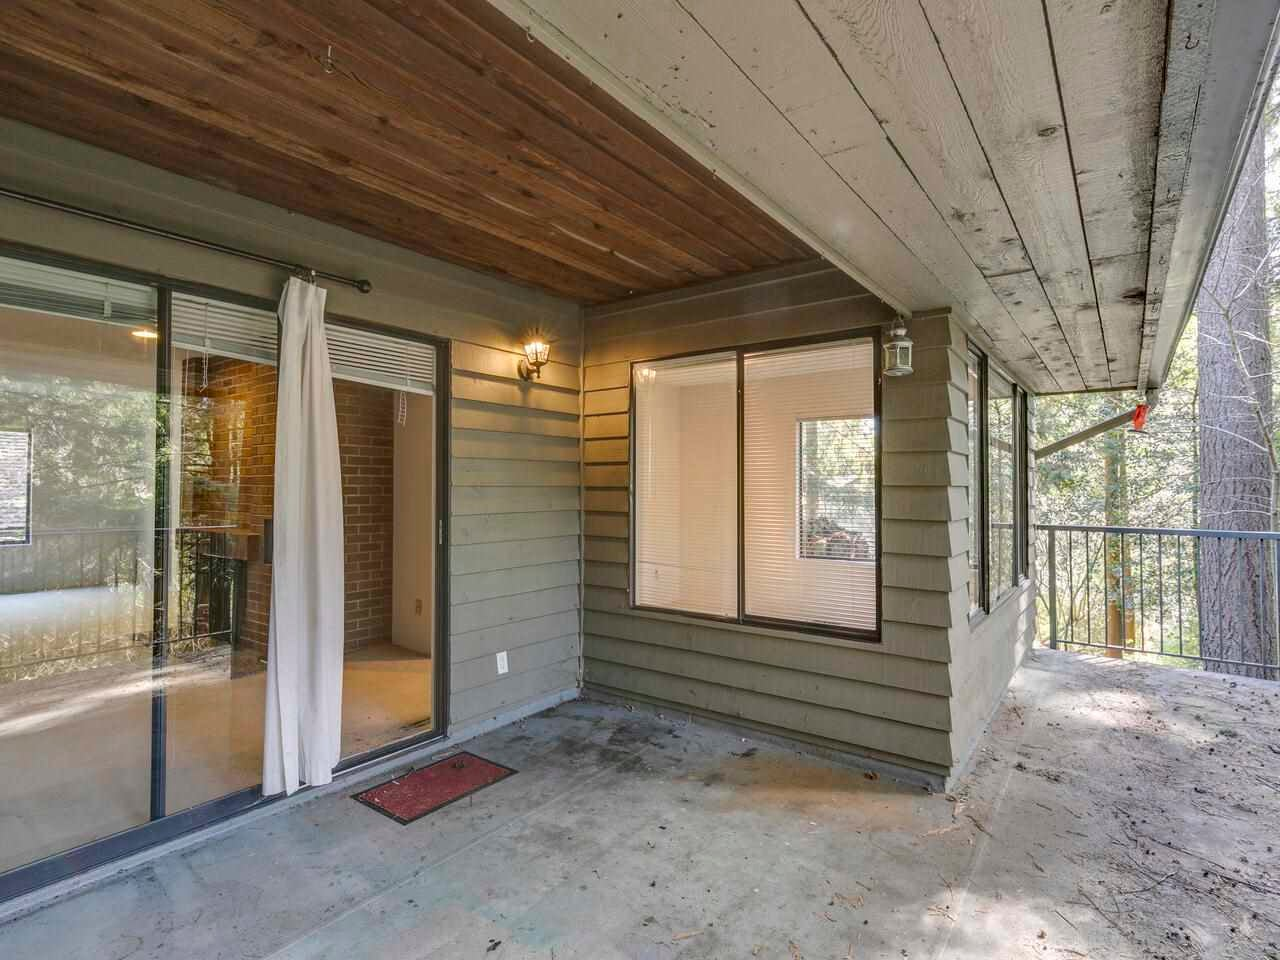 867 FREDERICK ROAD - Lynn Valley Townhouse for sale, 3 Bedrooms (R2569757) - #13